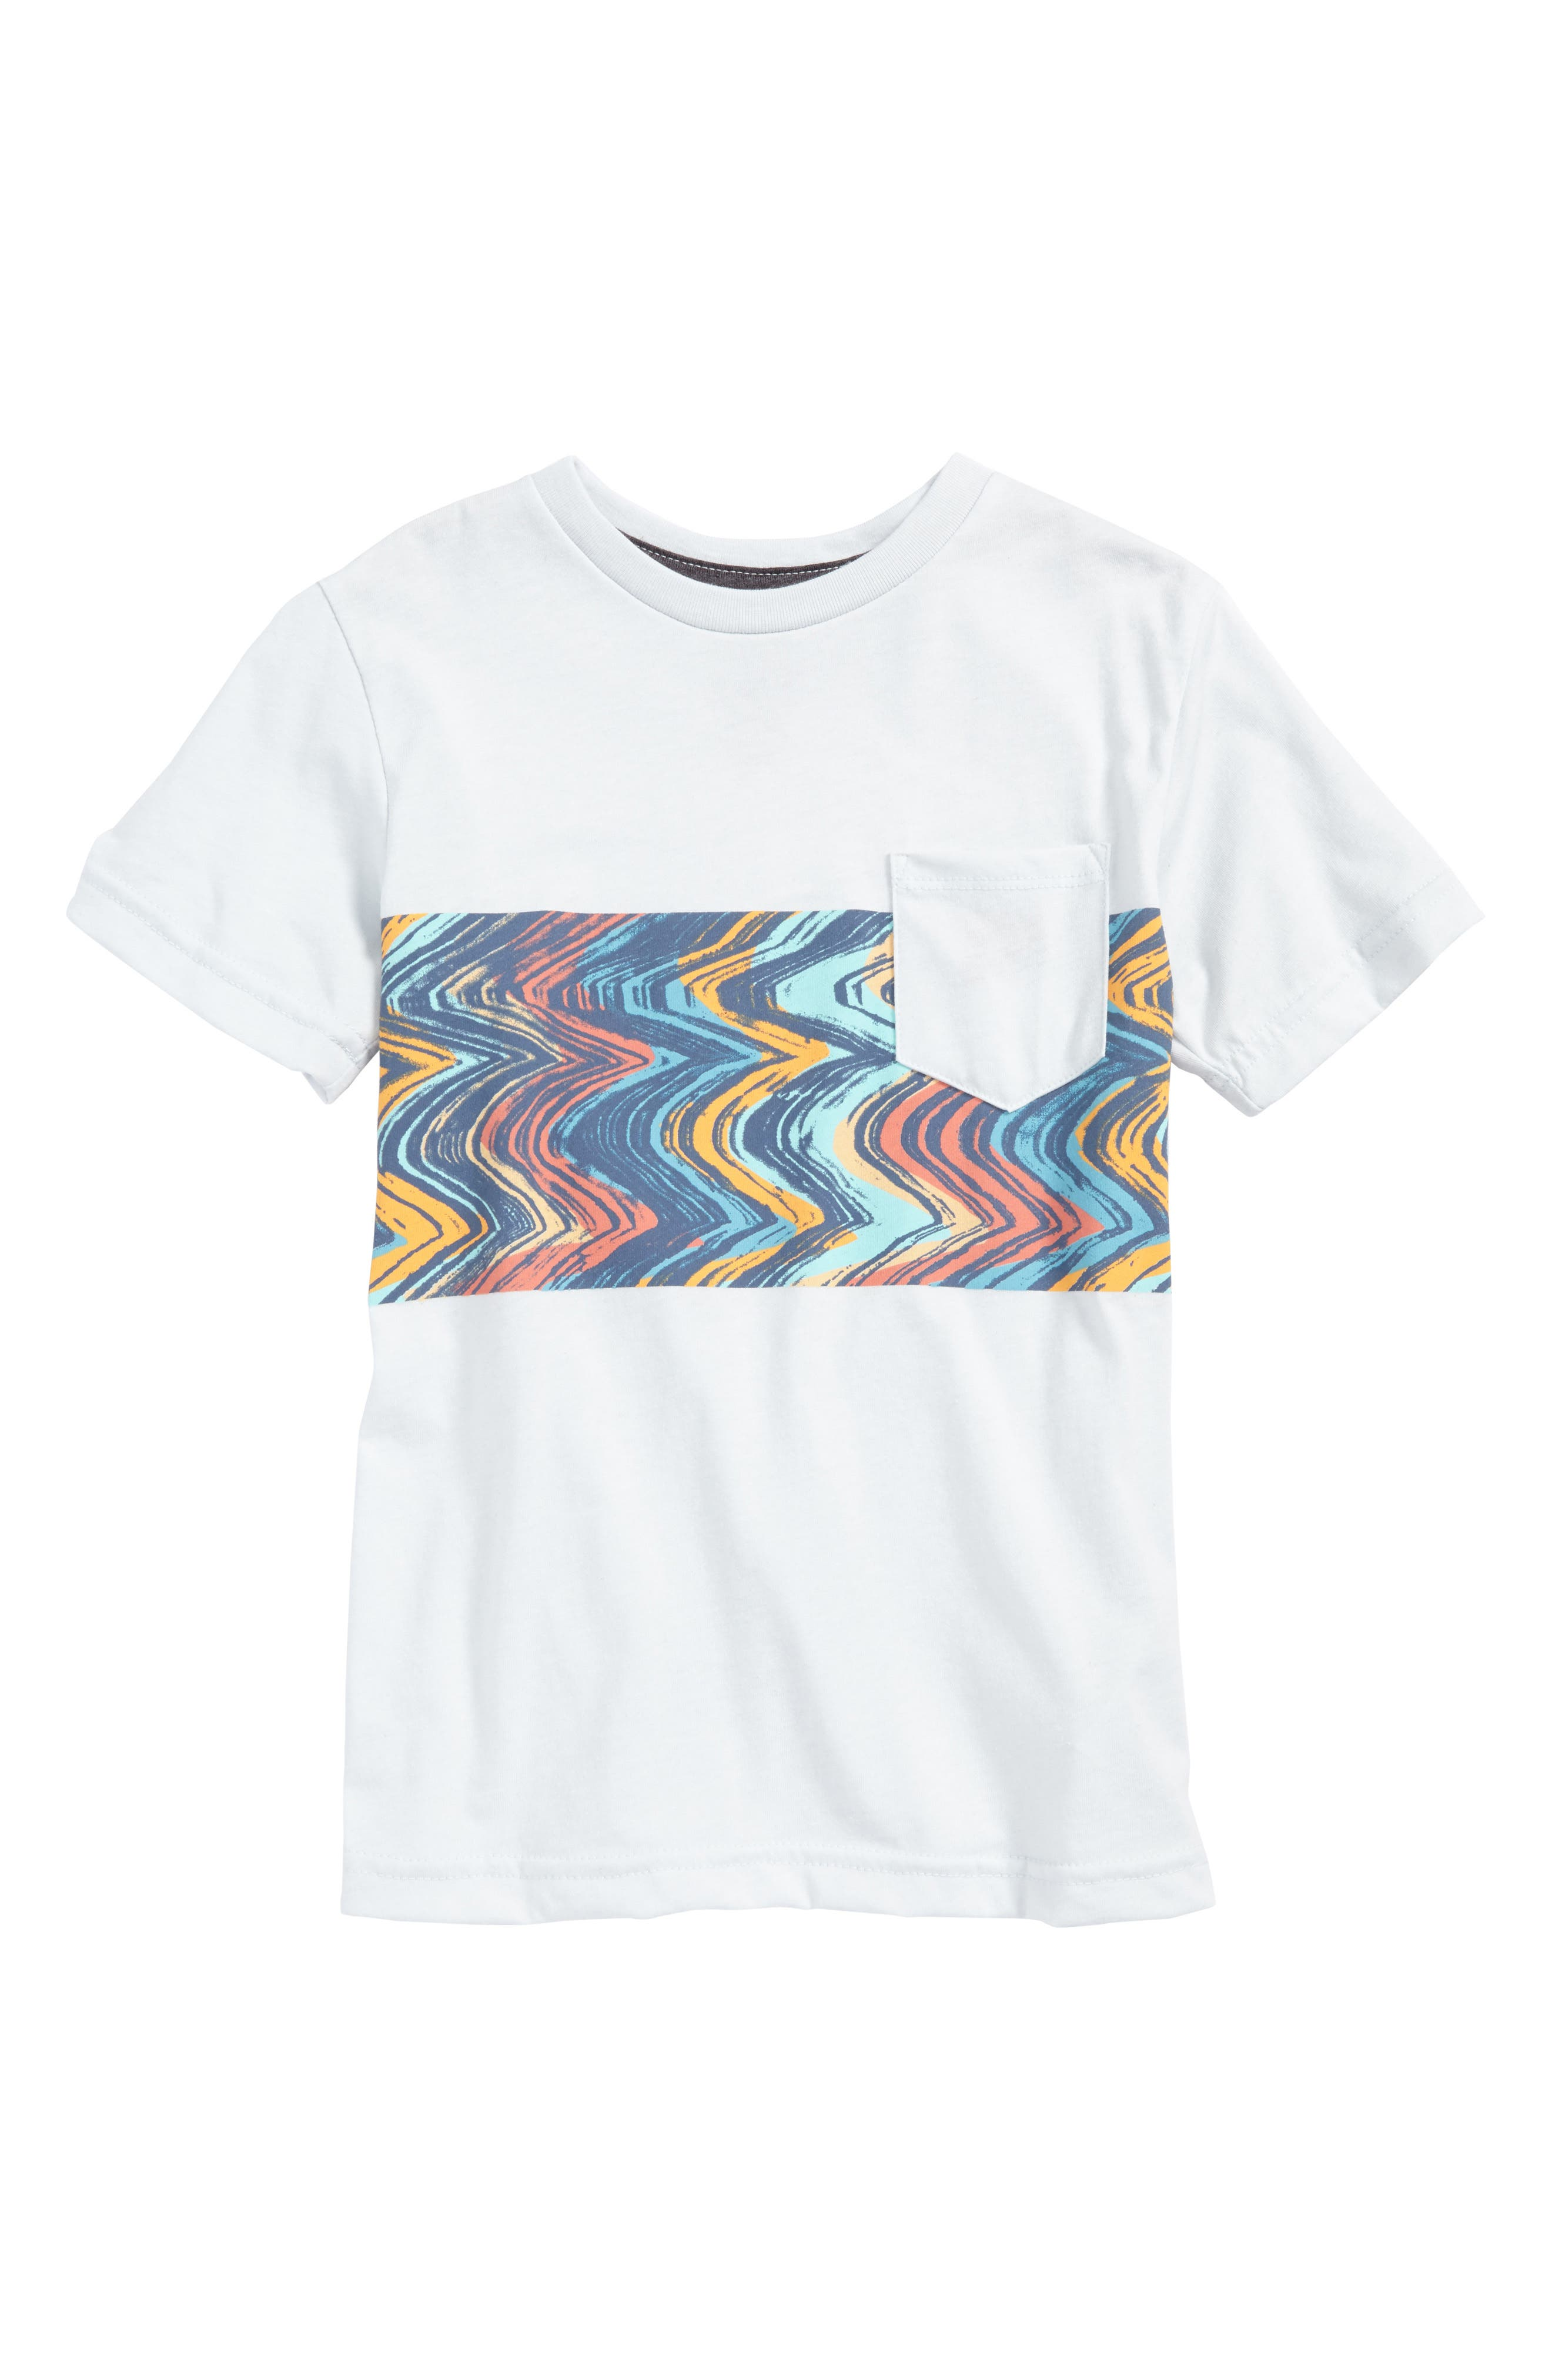 Main Image - Volcom Lo-Fi Colorblock Pocket T-Shirt (Toddler Boys & Little Boys)